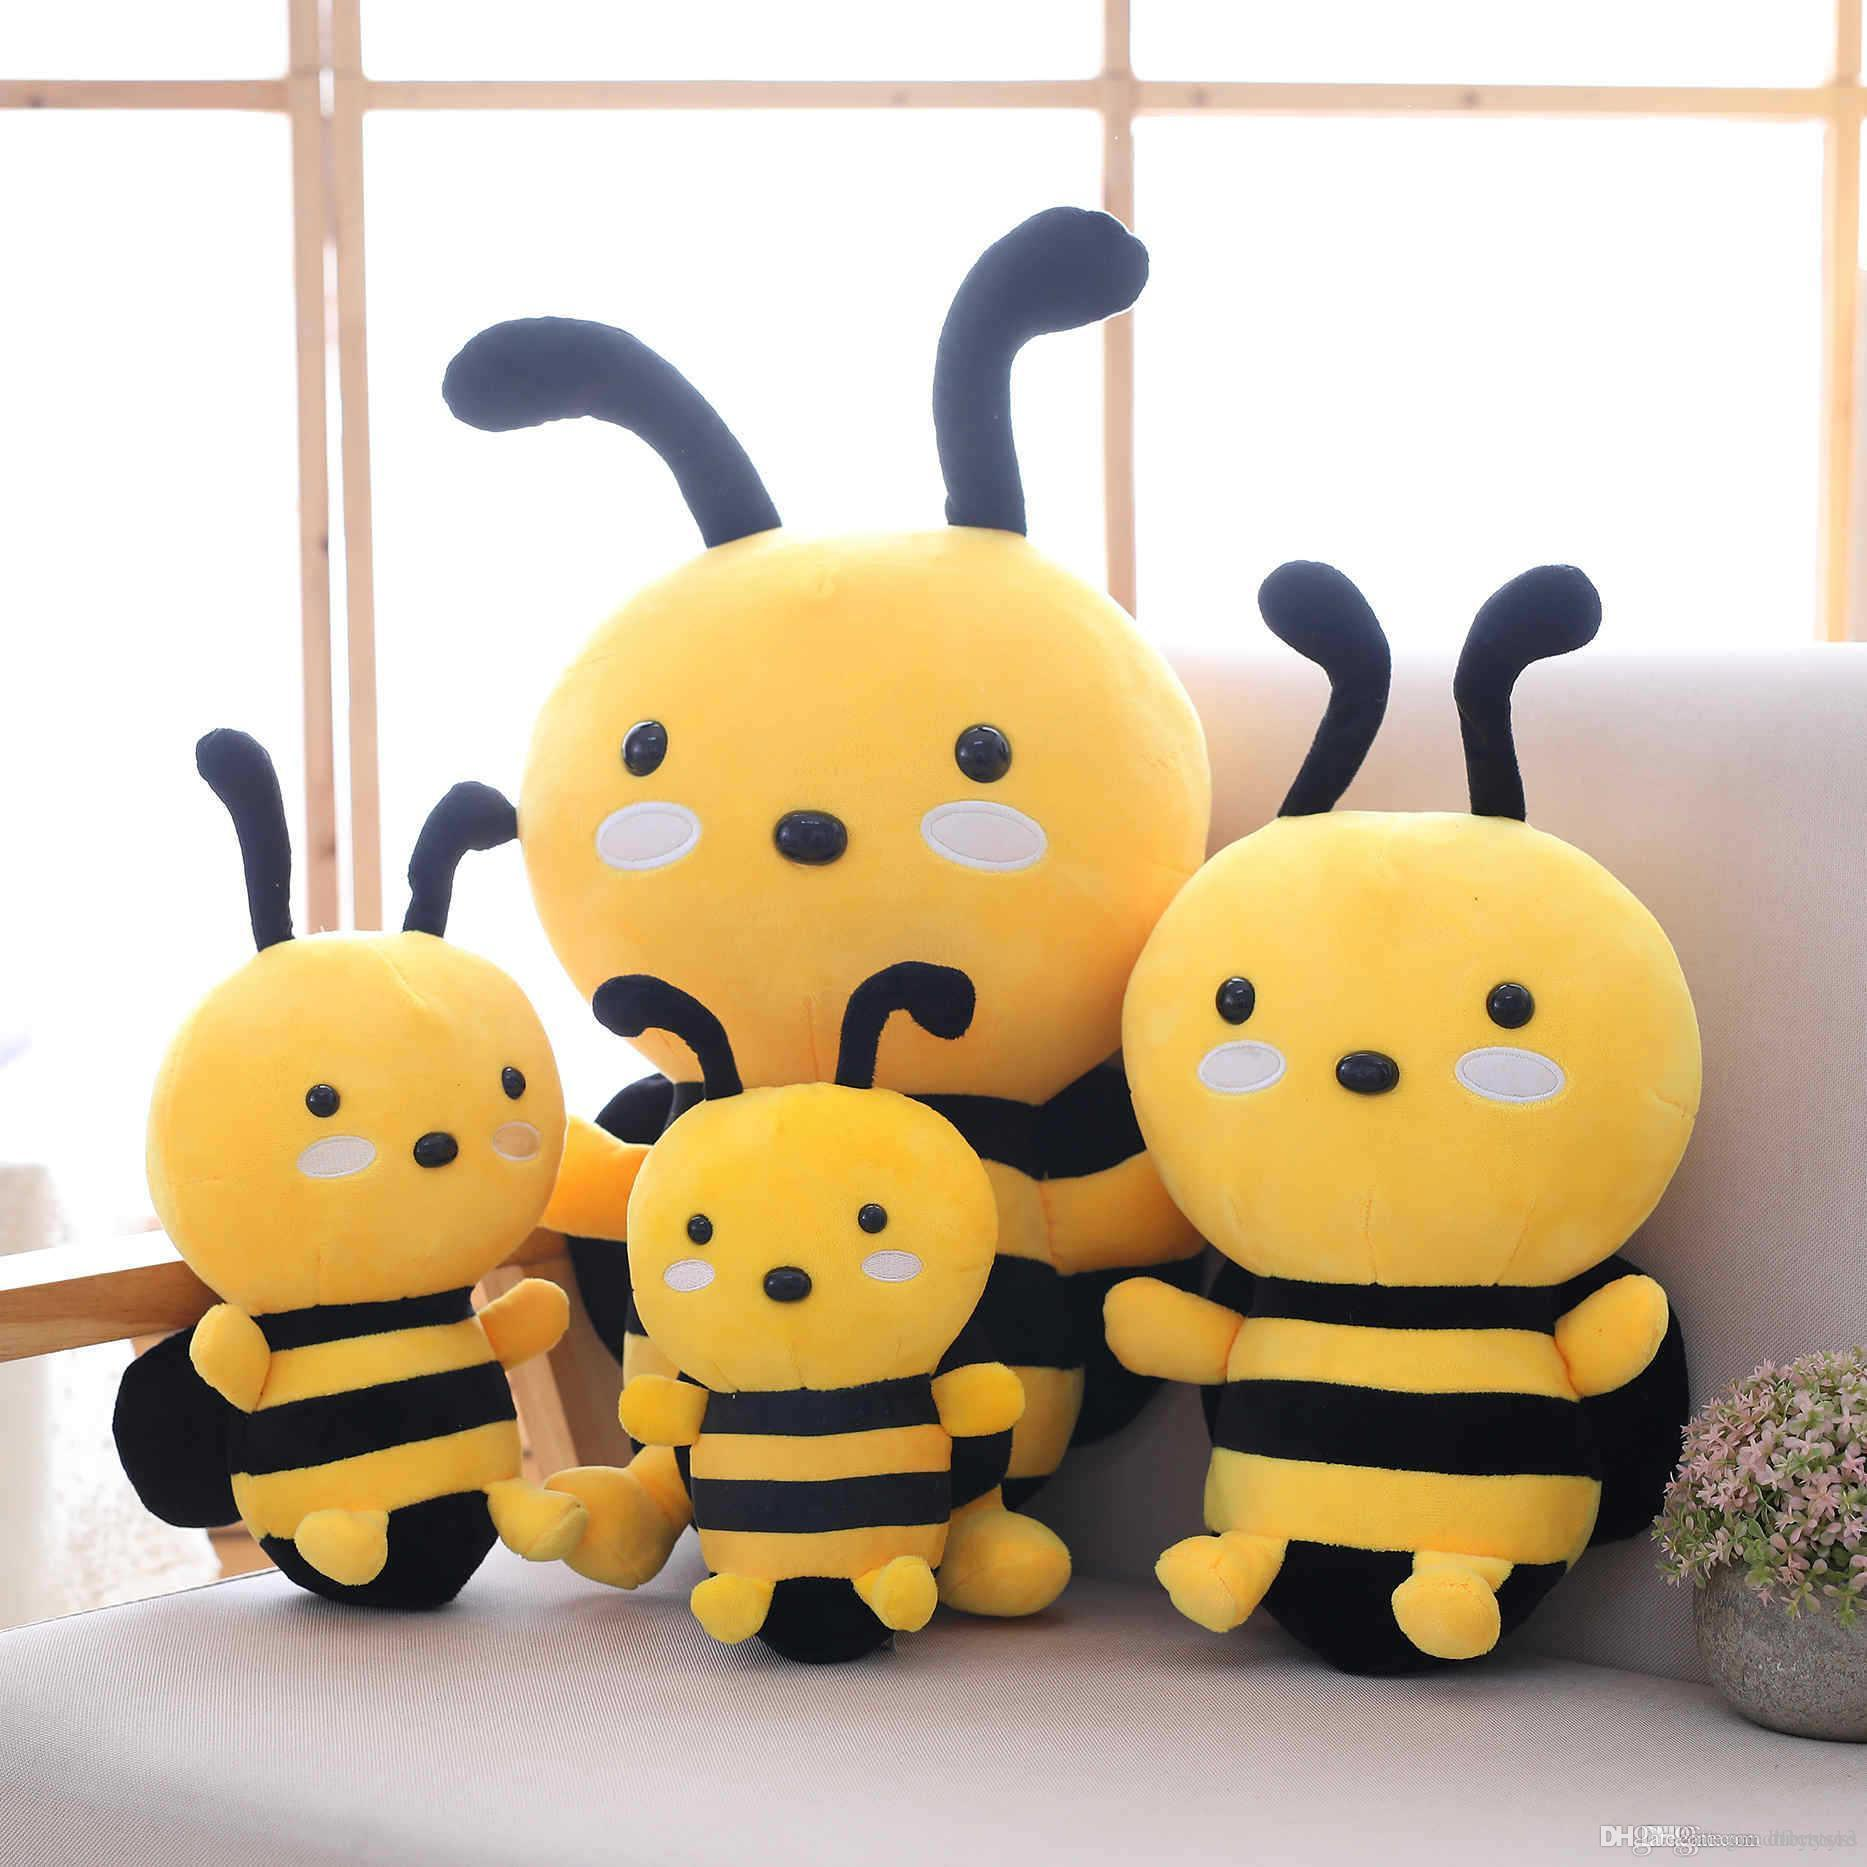 Good Miaoowa 20-30cm Kawaii Honeybee Plush Toy Cute Bee with Wings Stuffed Baby Dolls Lovely Toys for Children Appease